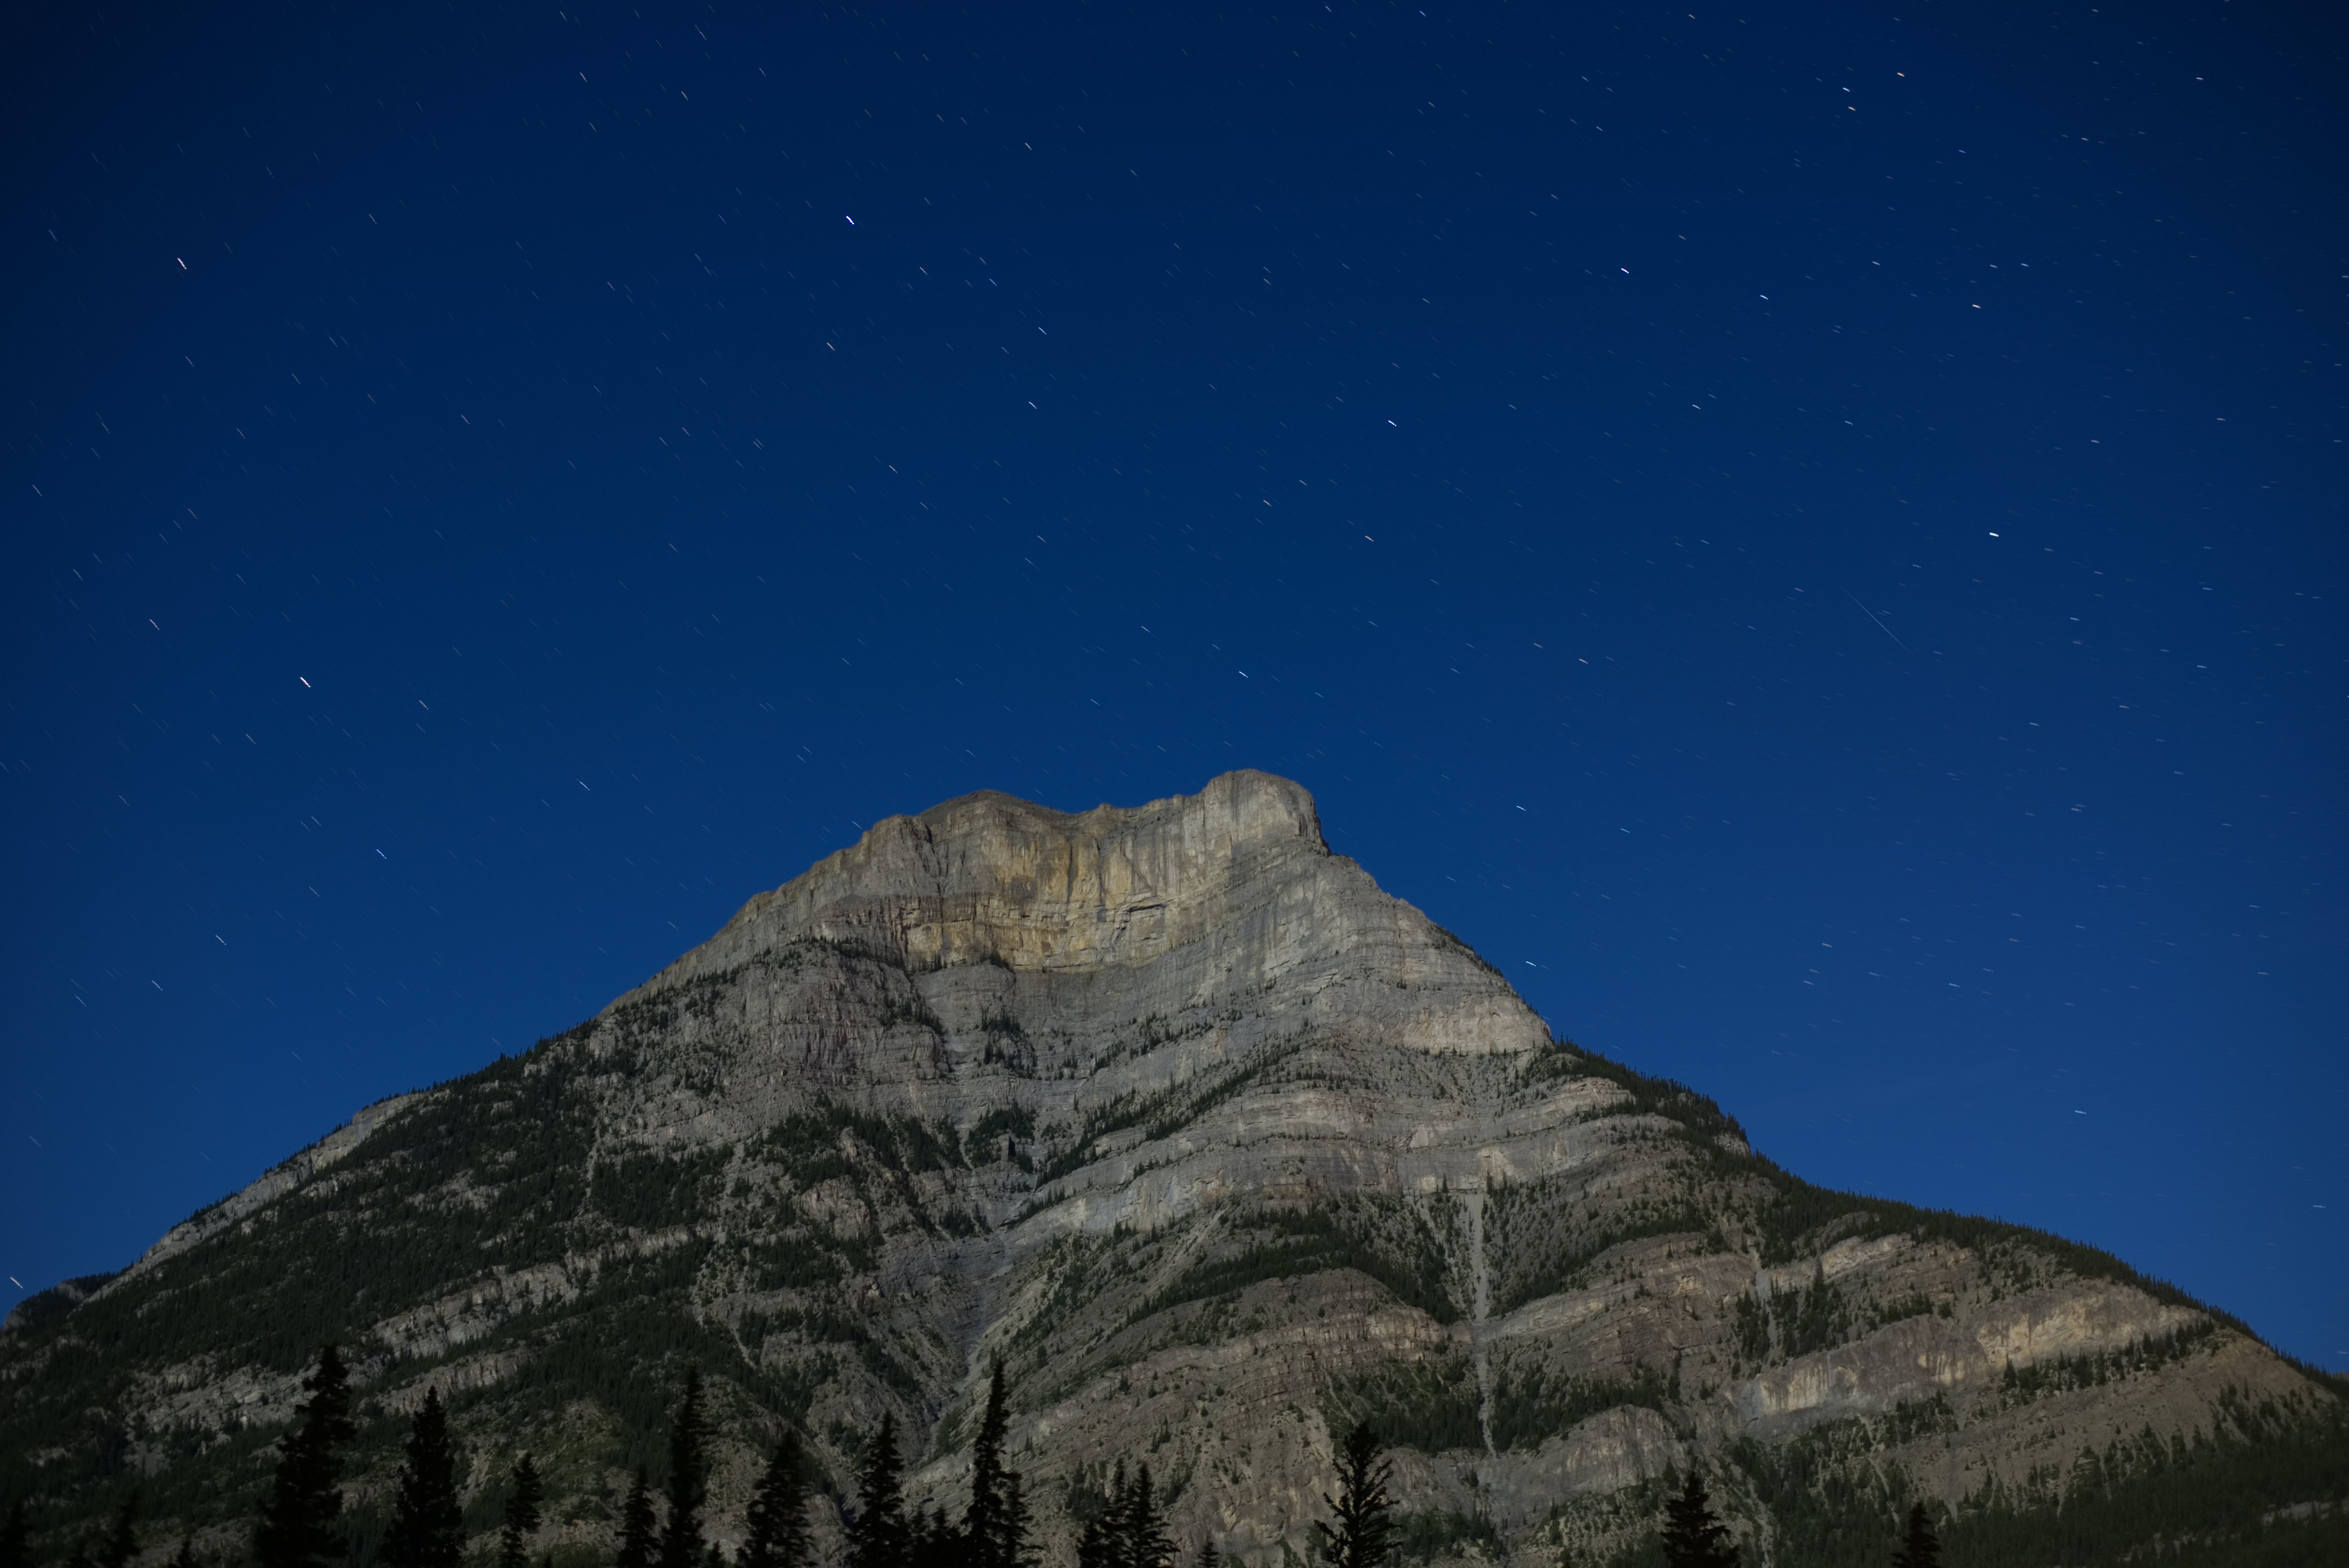 worm's-eye view photography of mountain under blue sky